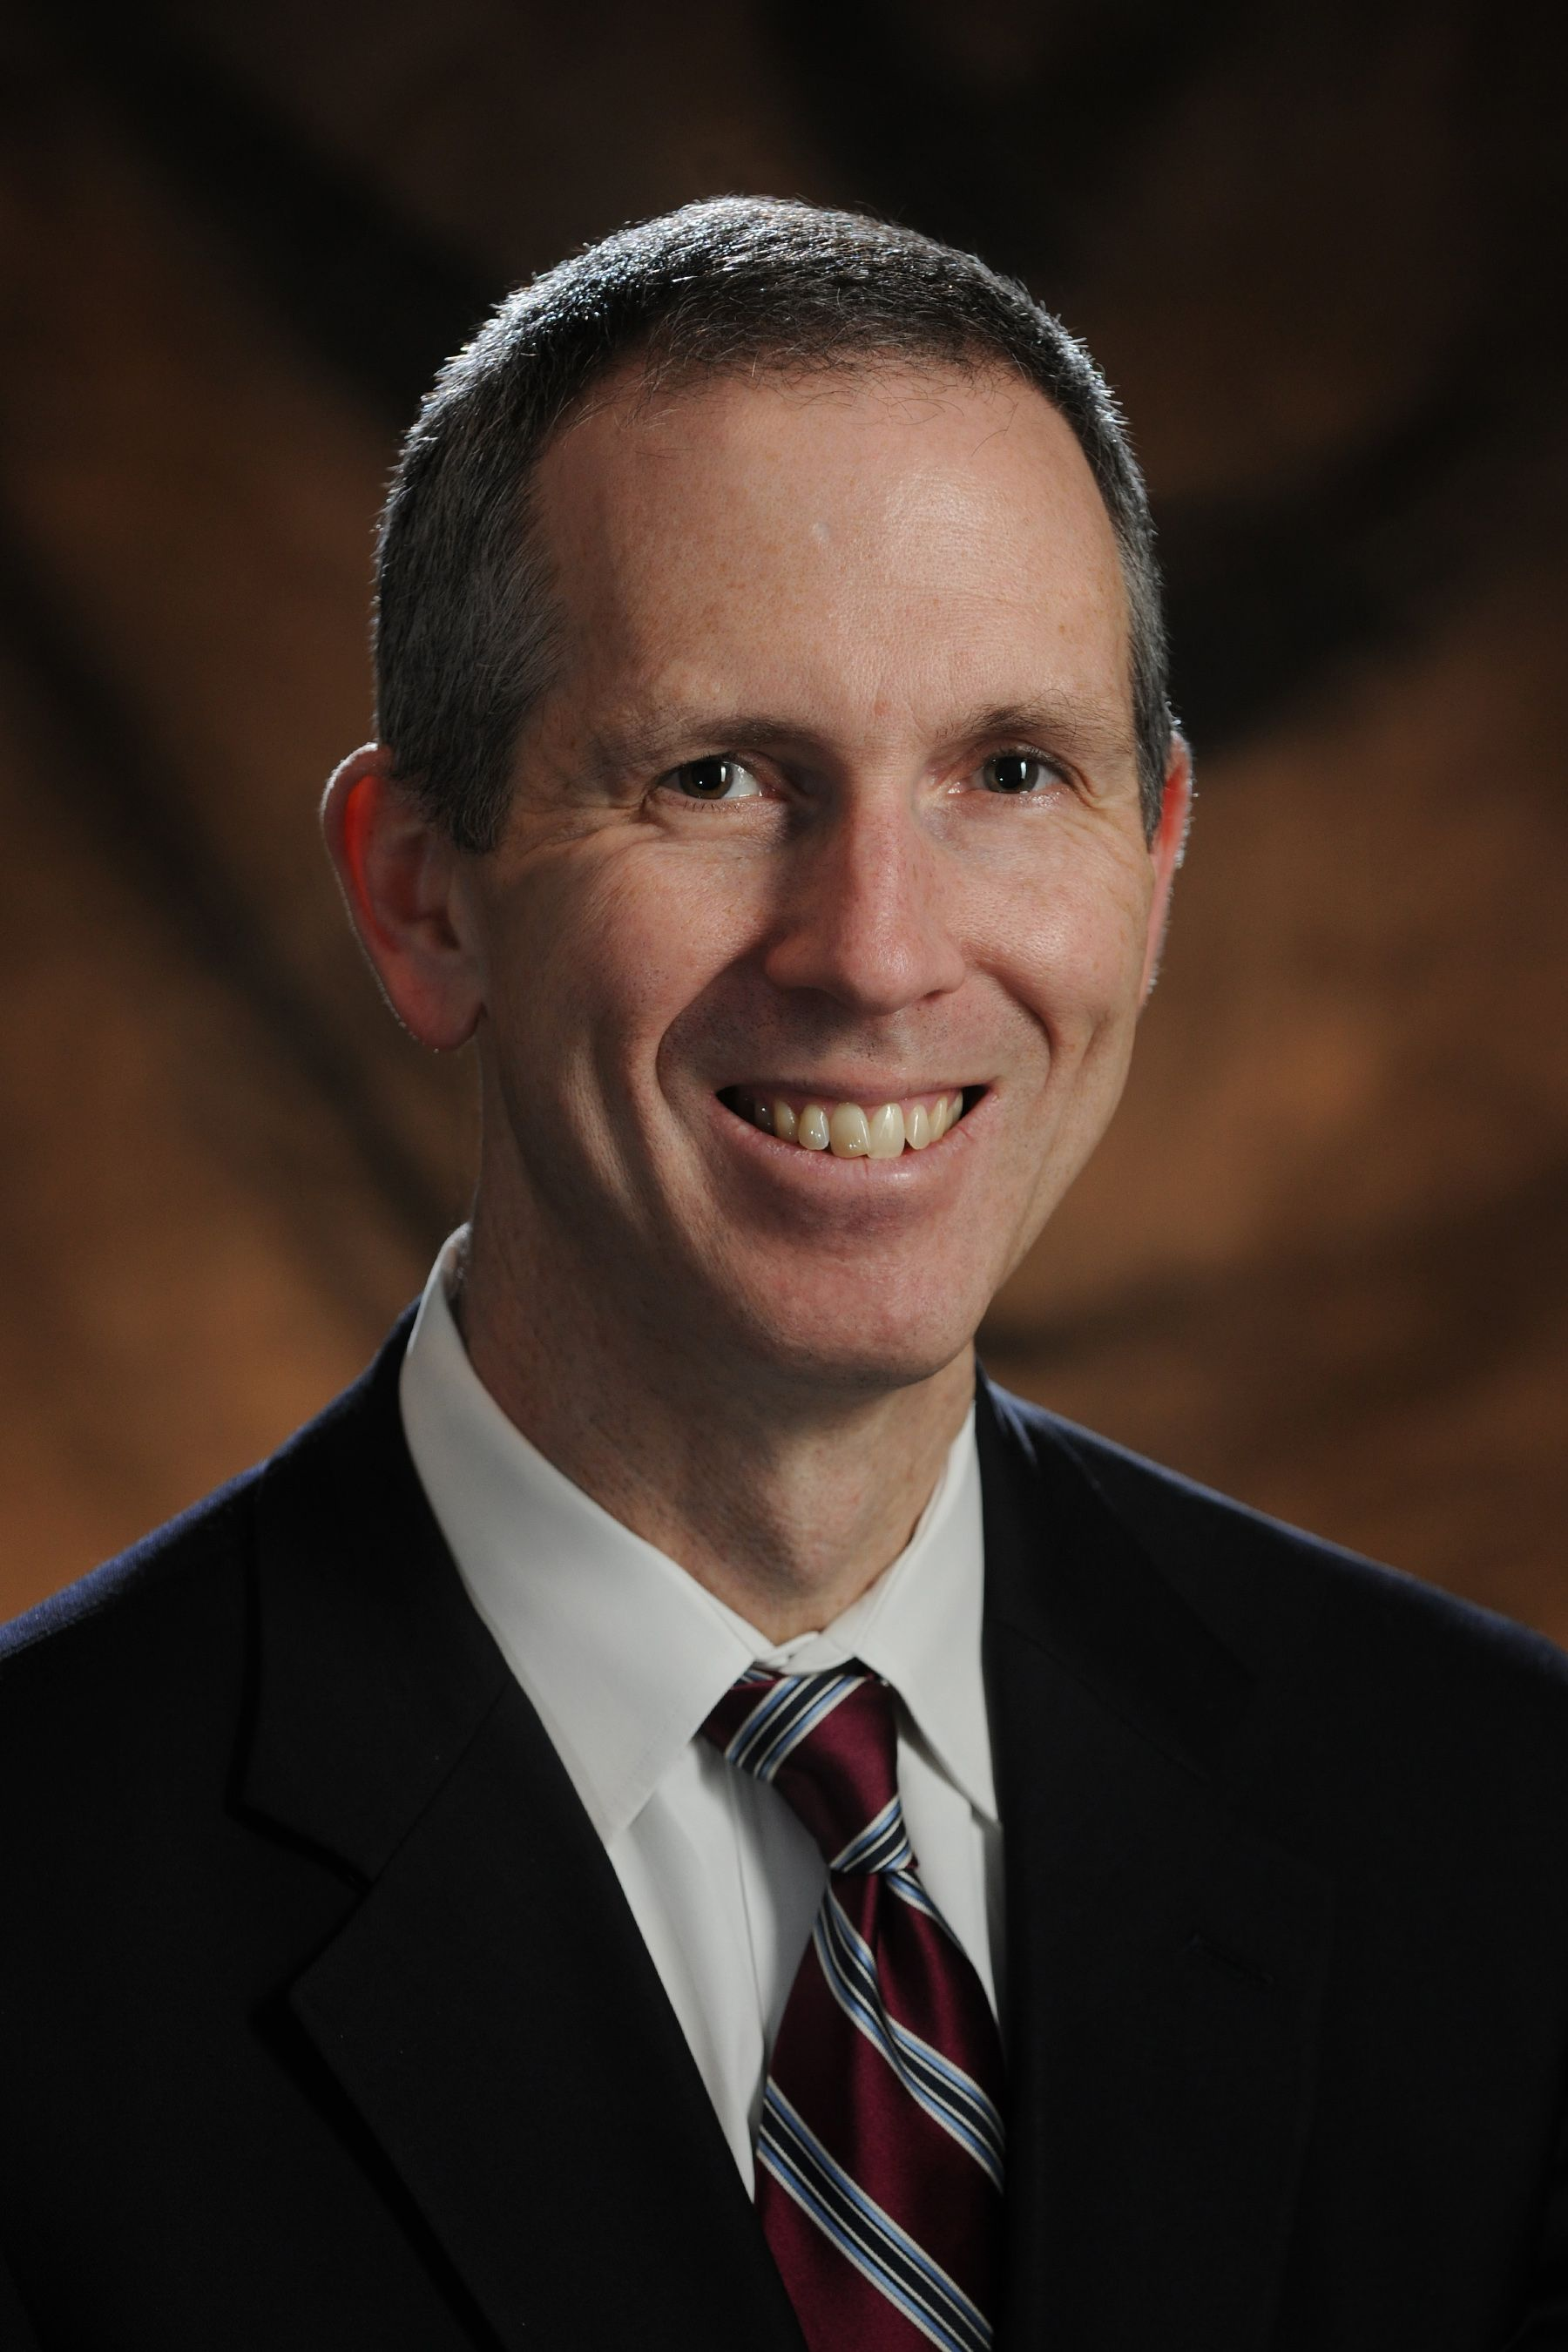 James j purtill md specialty orthopaedic surgery